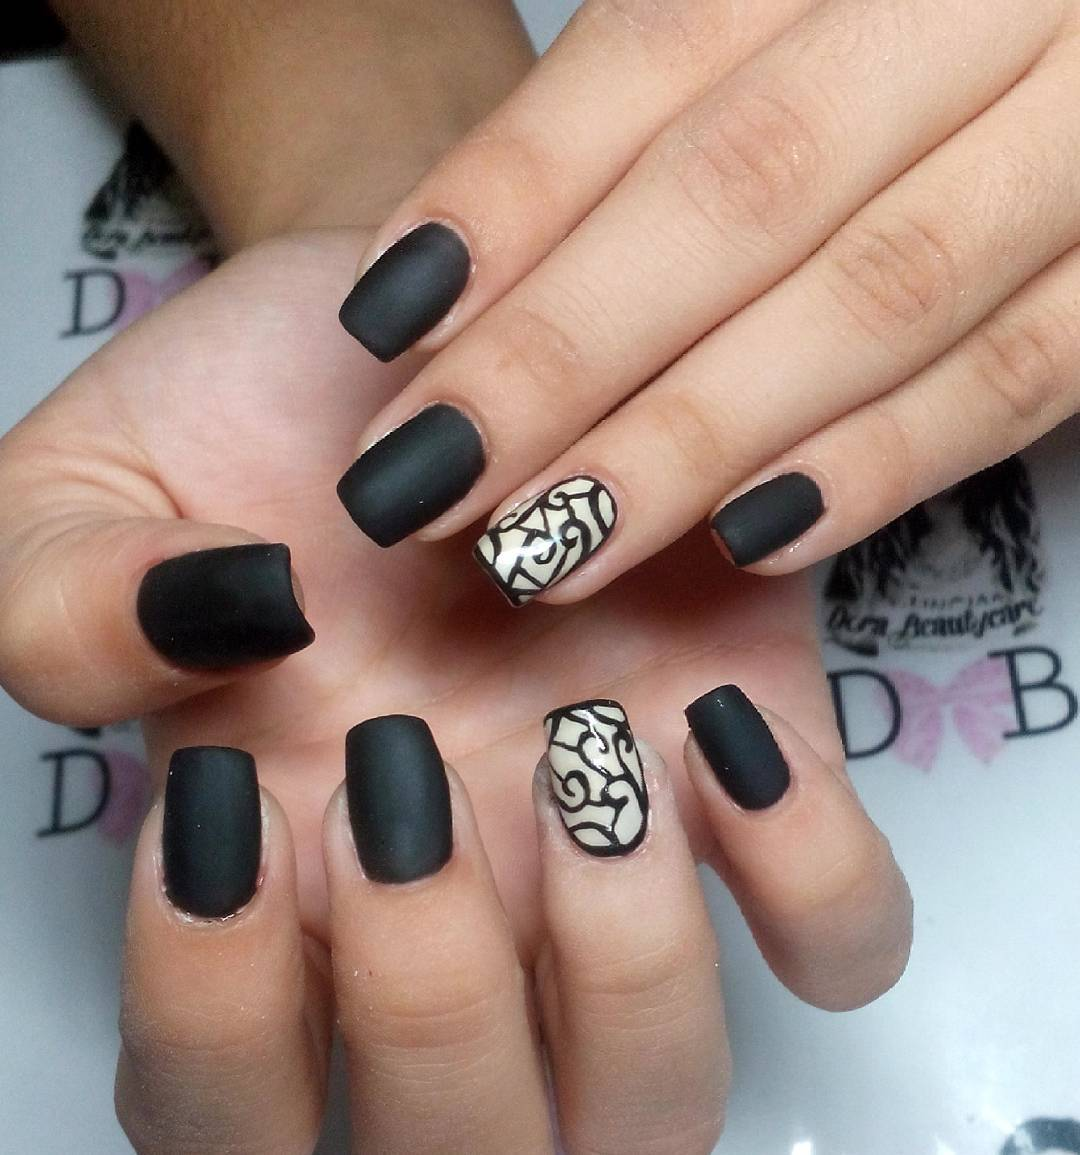 designed black nail art for women - 29+ Black Acrylic Nail Art, Designs, Ideas Design Trends - Premium